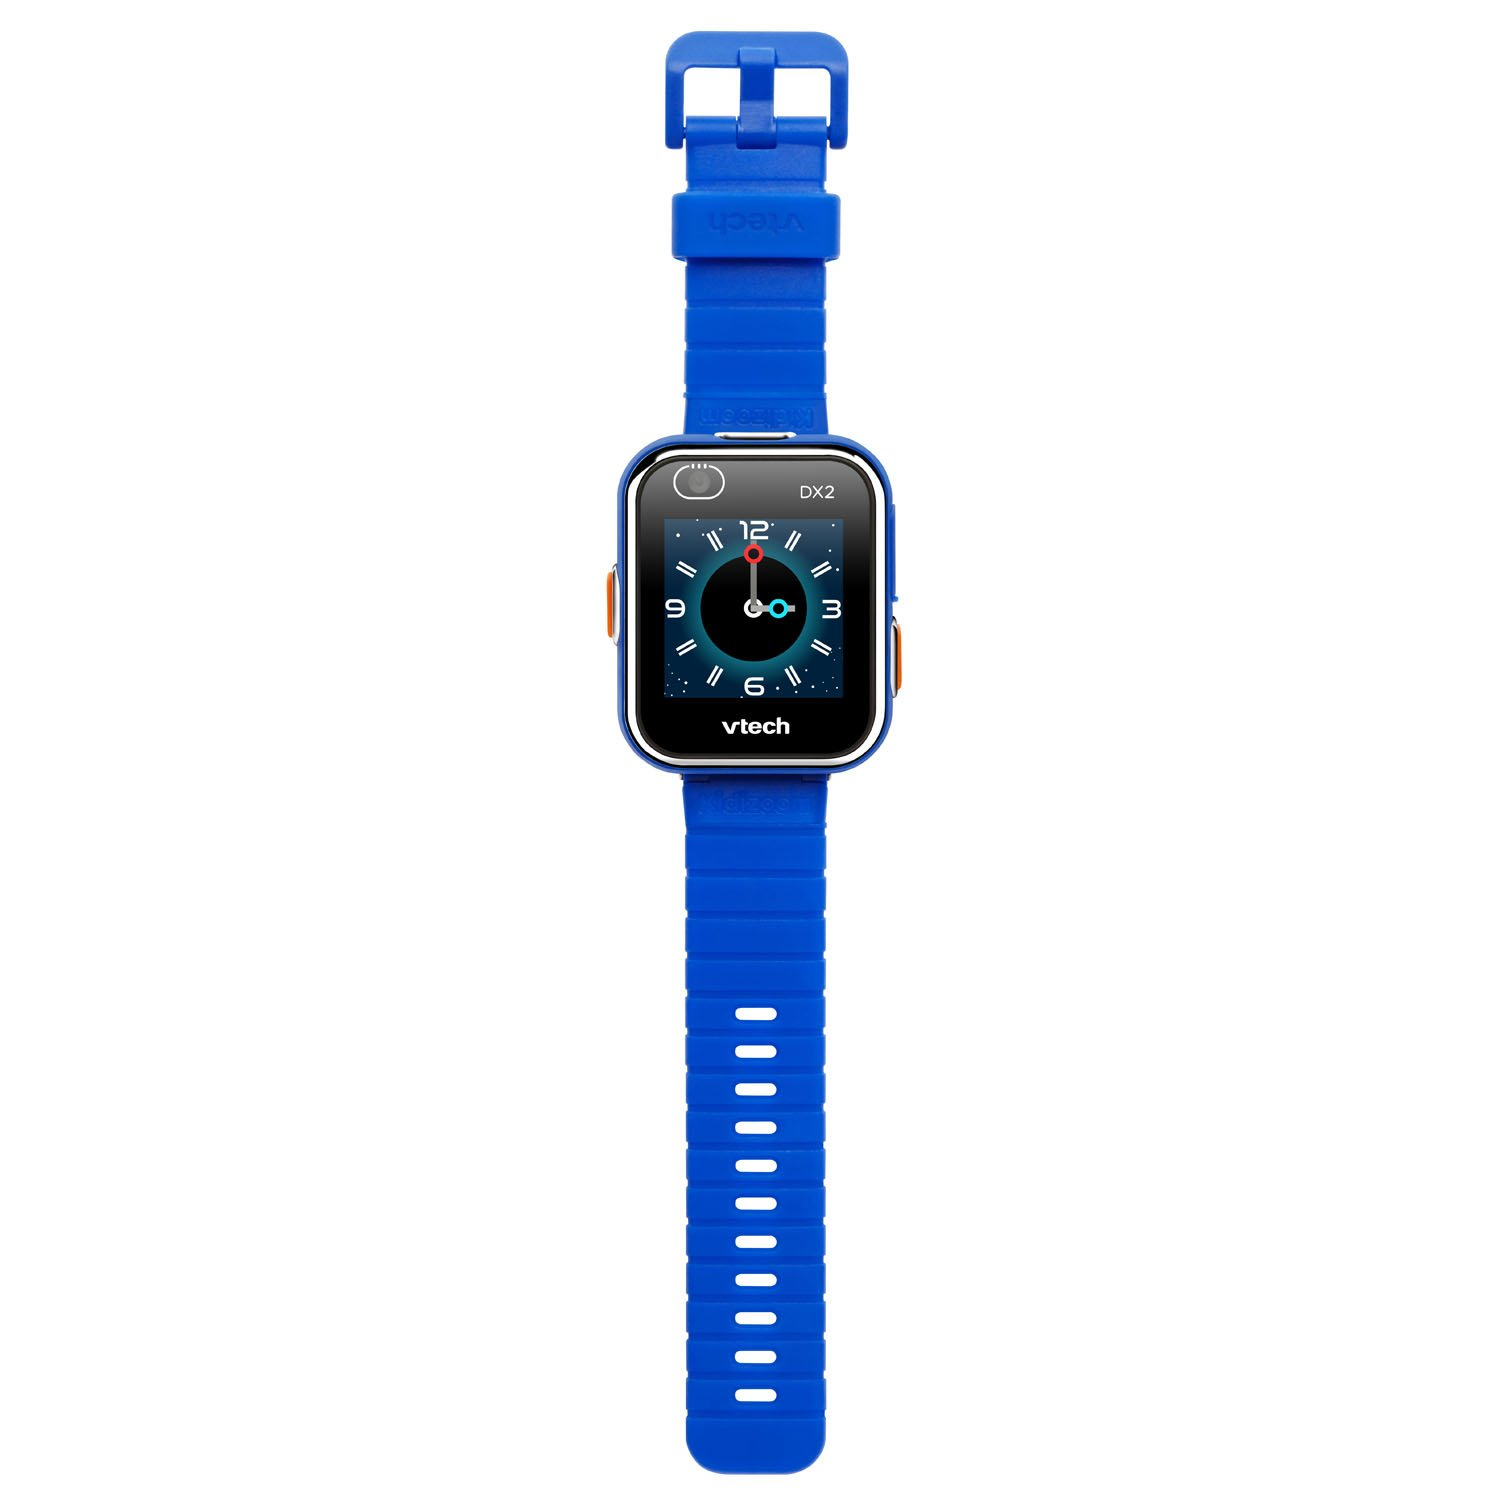 VTech Kidizoom Smartwatch DX2 Blue (Frustration Free Packaging) by VTech (Image #2)